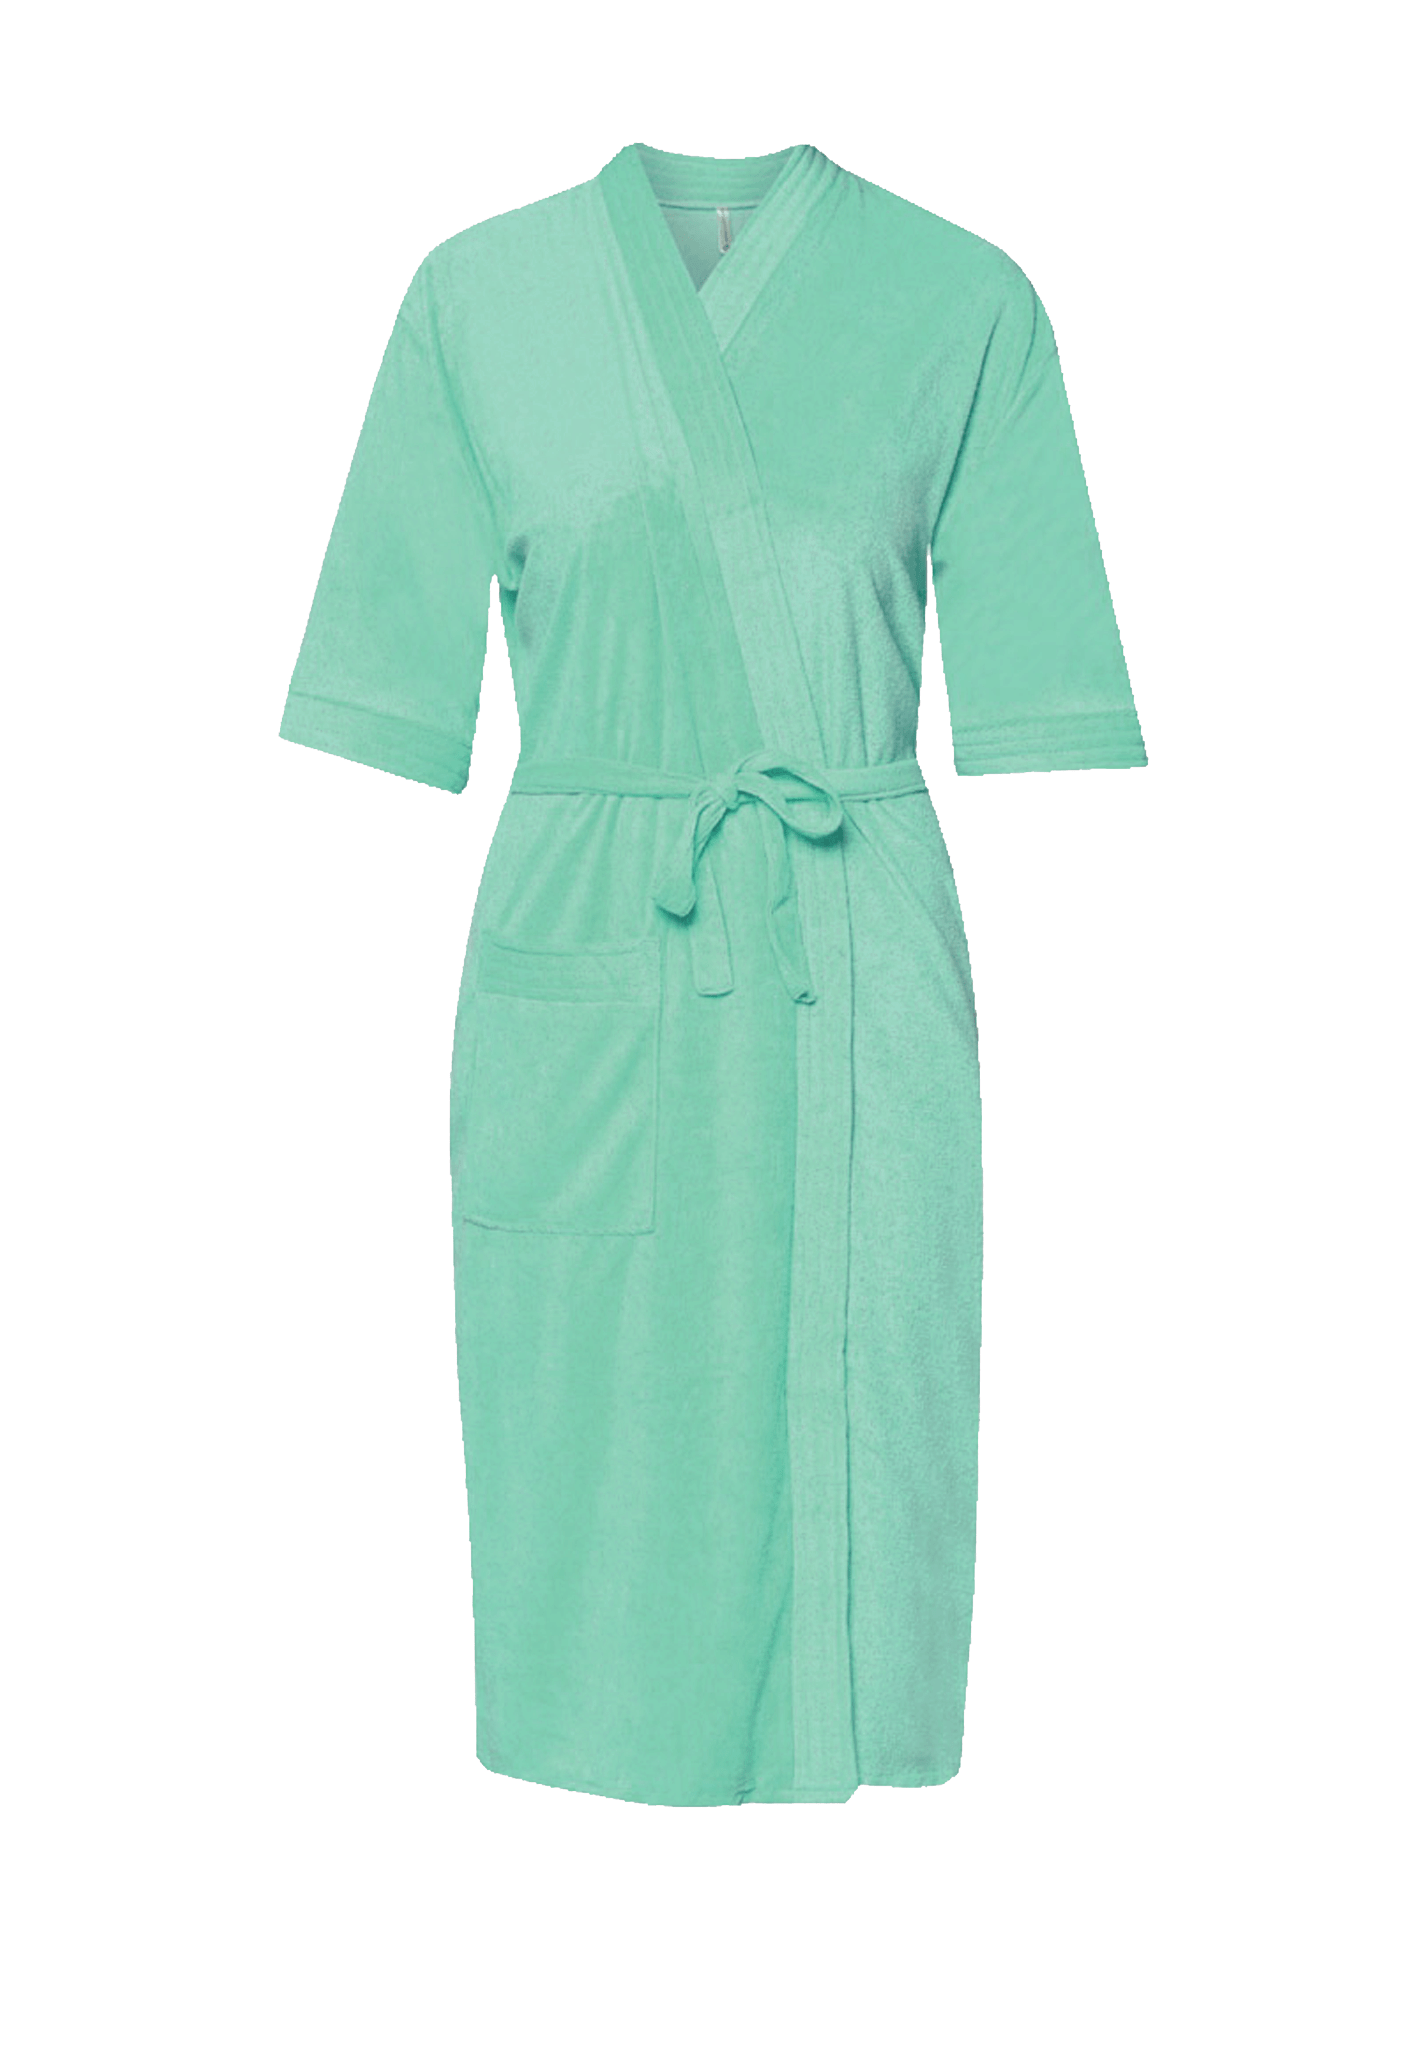 Swim Robe in Jade Green - FUNFIT